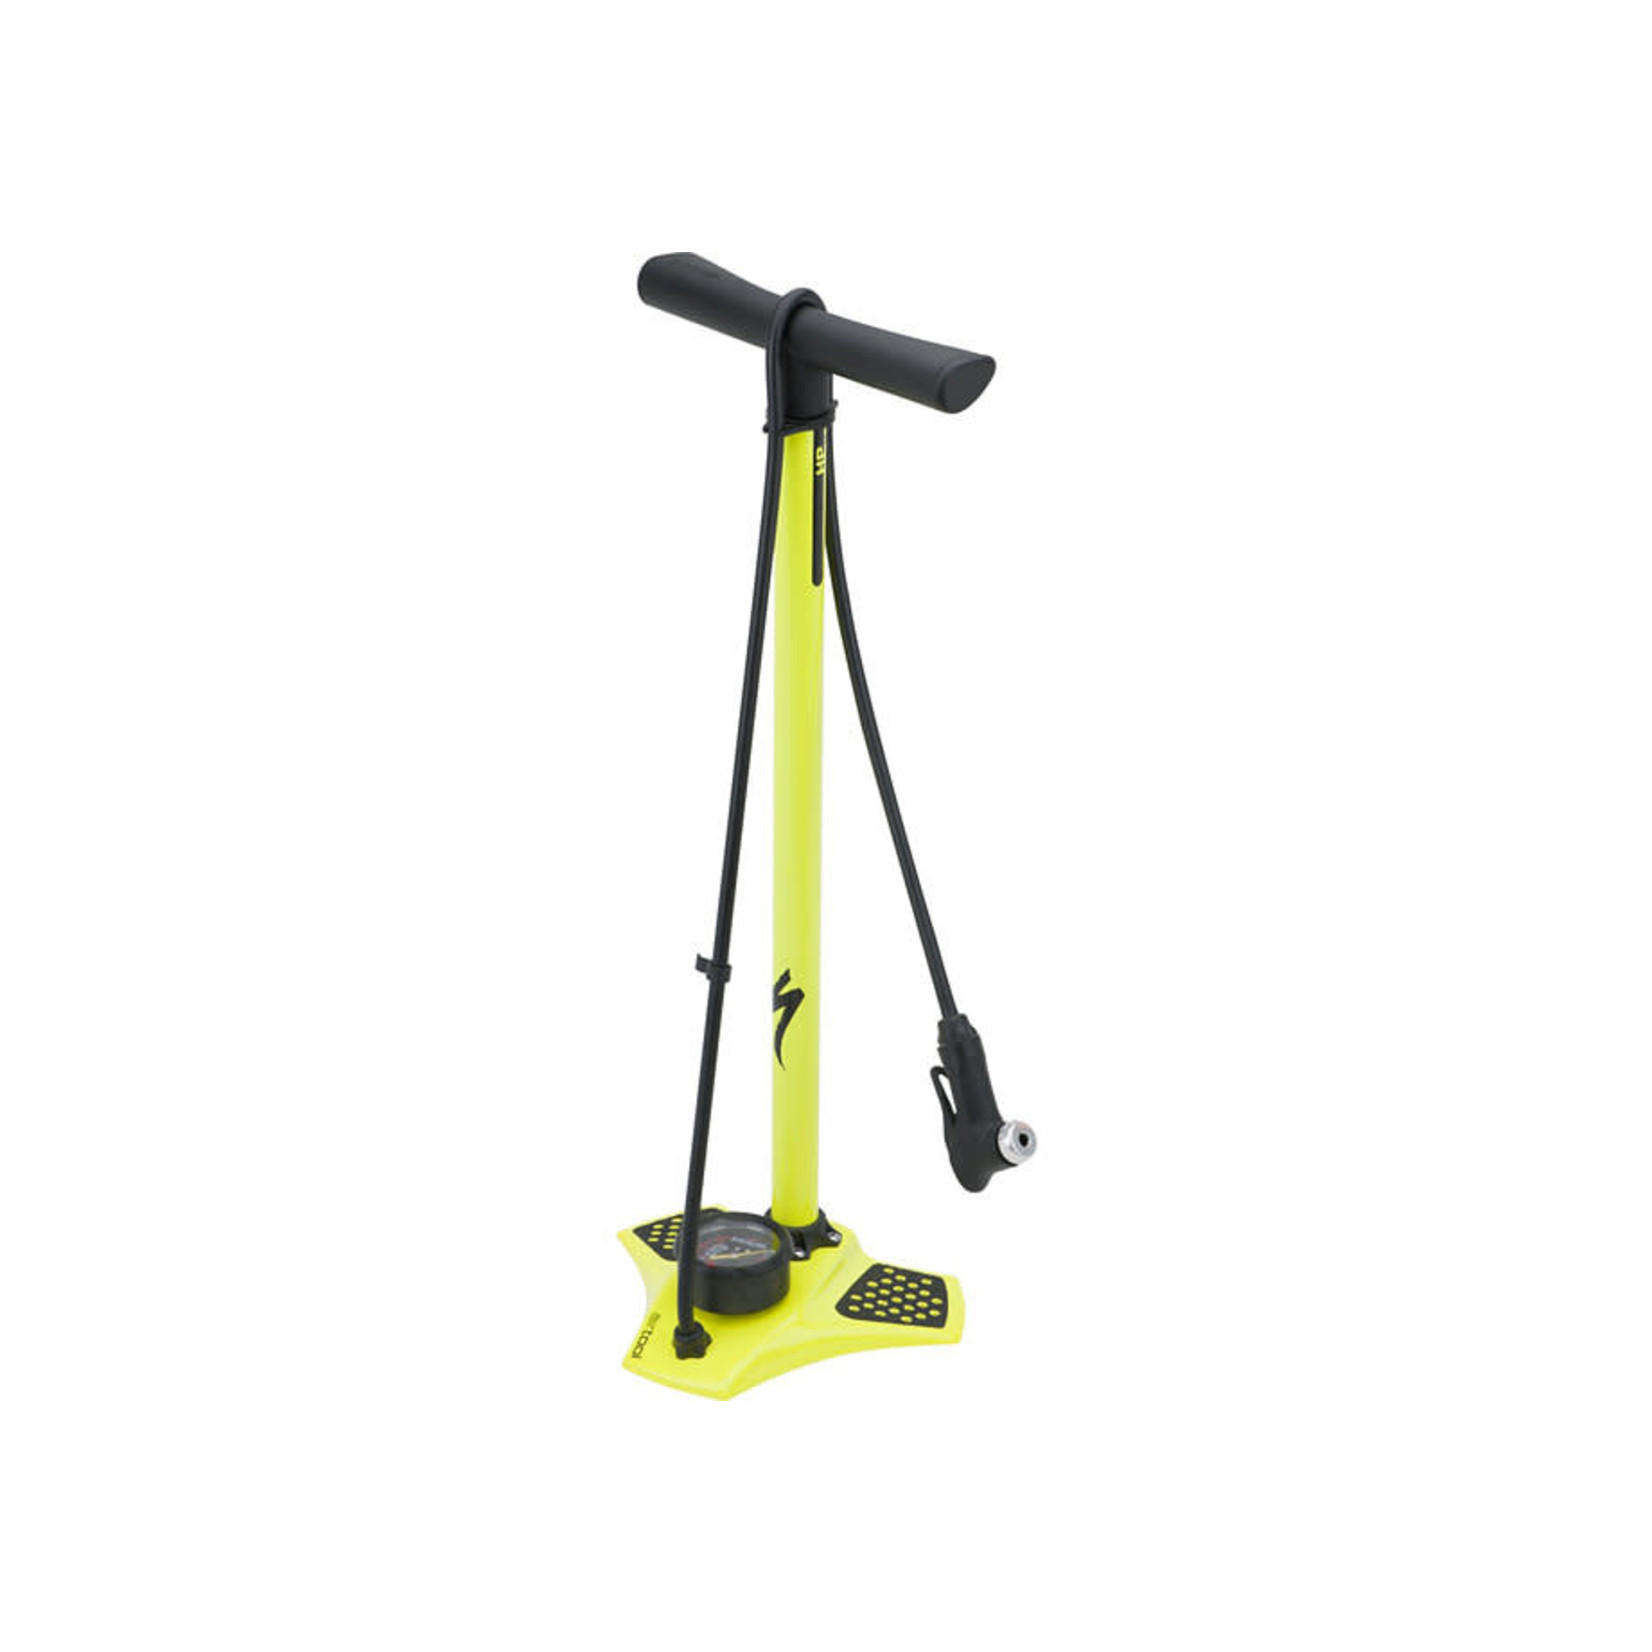 Specialized Specialized Airtool High Pressure Floor Pump Ion